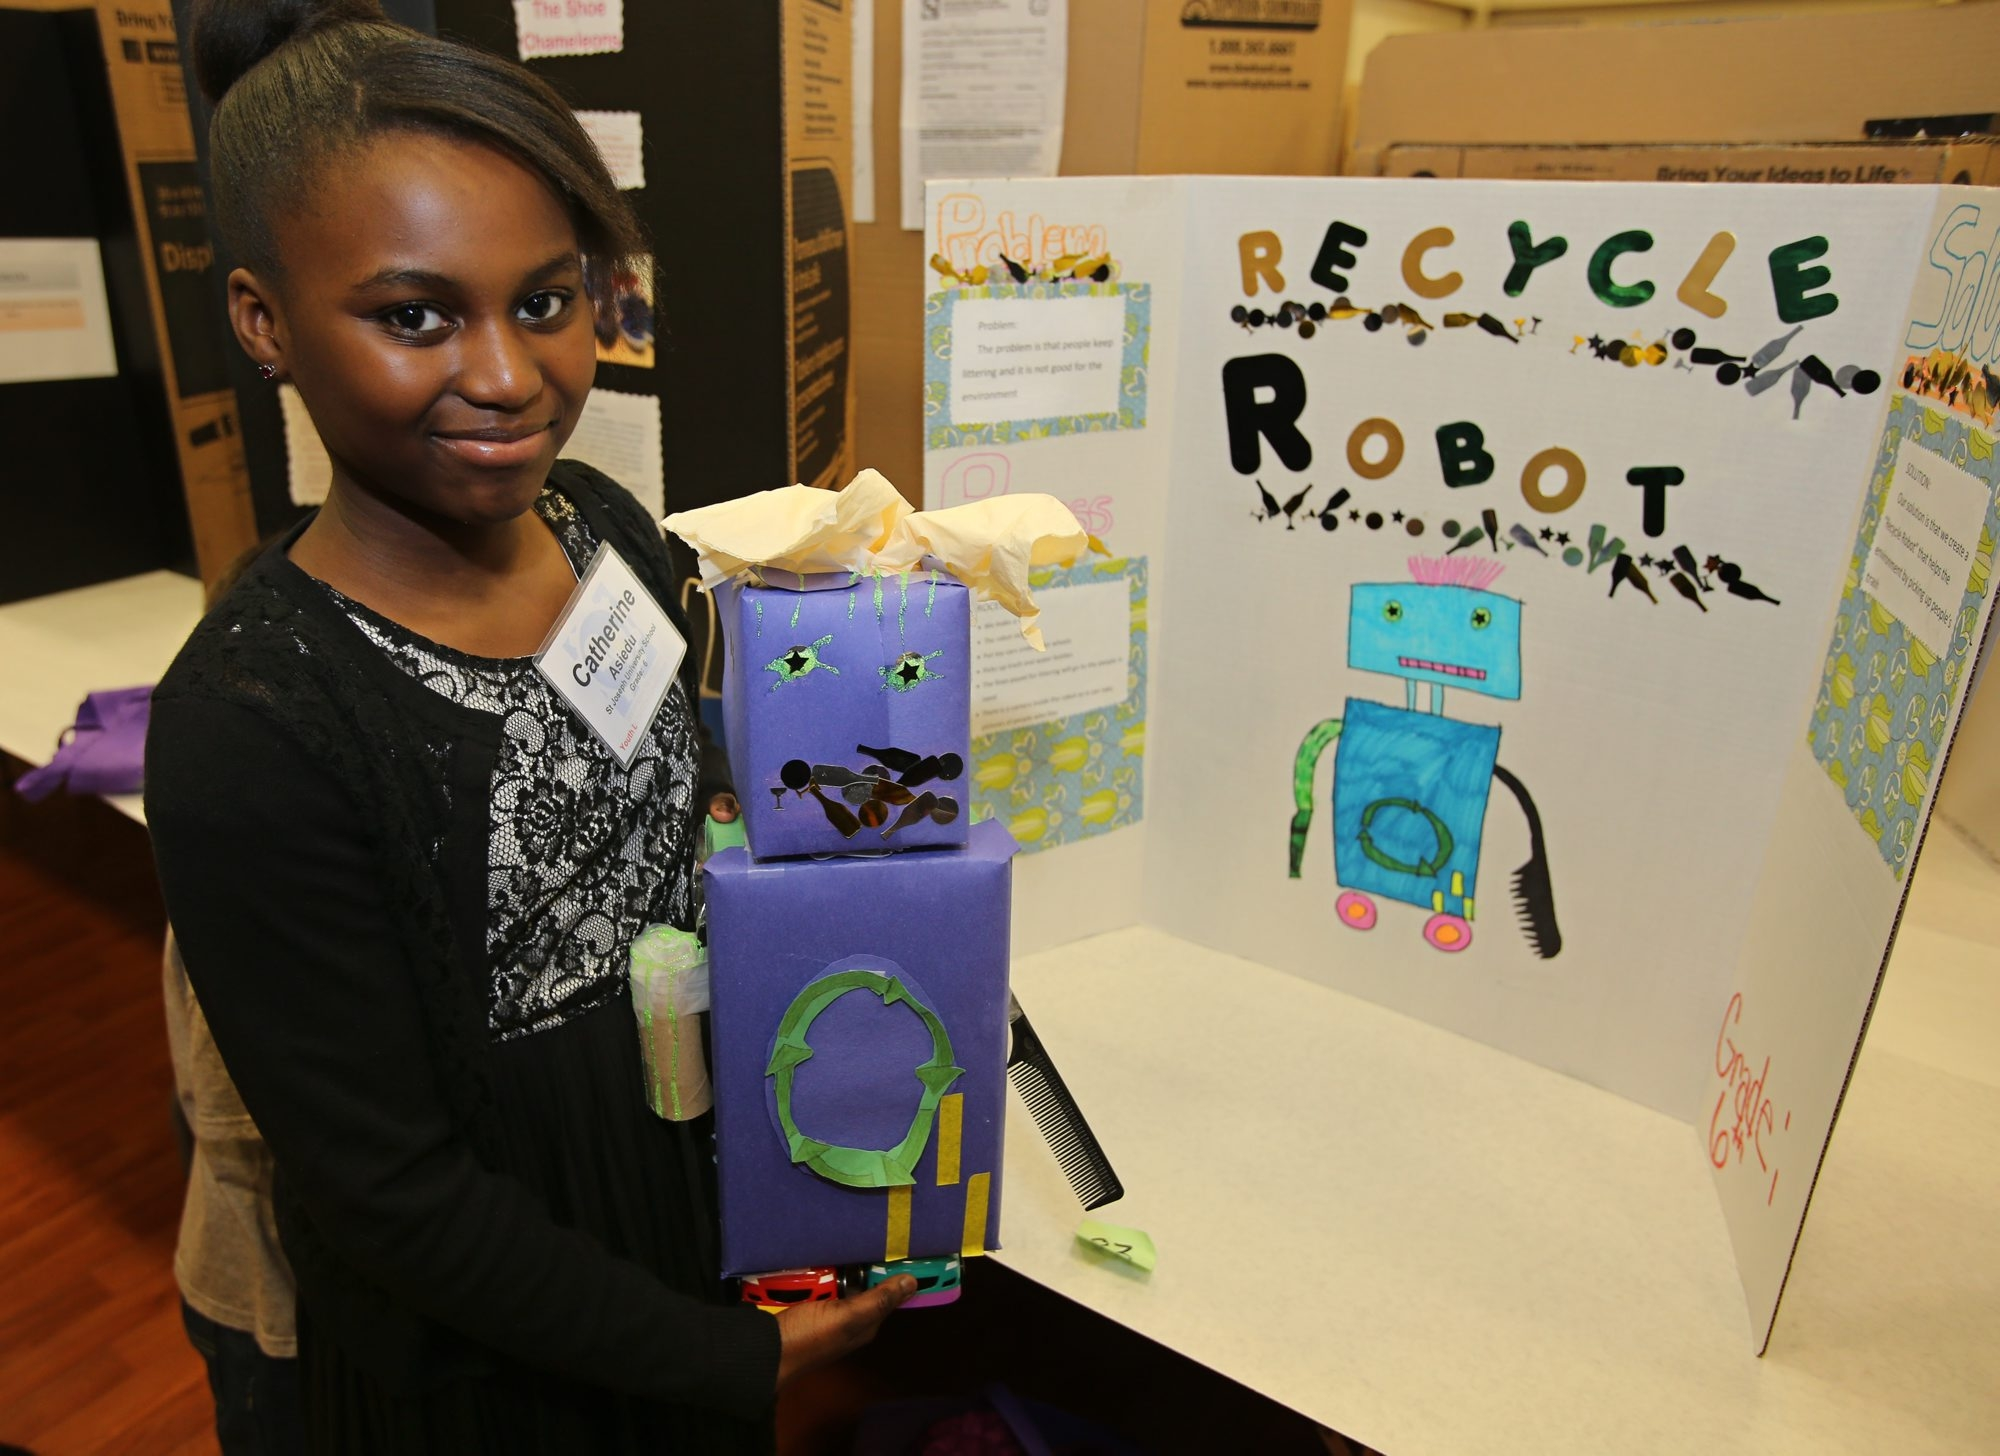 """Catherine Asiedu, 11, of Amherst, proudly displays her invention, """"Recycle Robot,"""" on Sunday during the Invention Convention at the Sullivan Campus Center at Medaille College."""